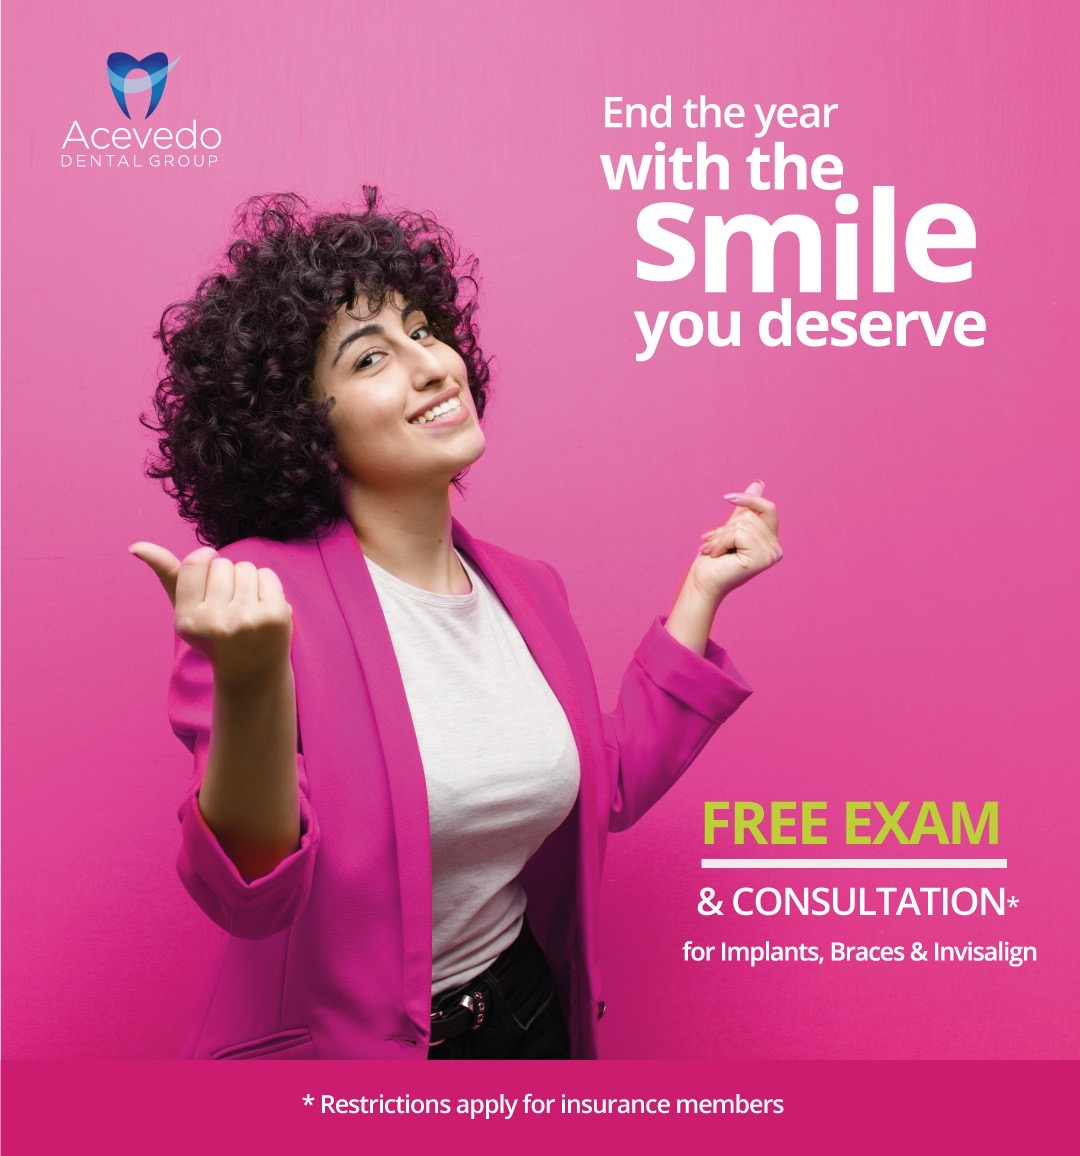 dental offer - free exam and consult